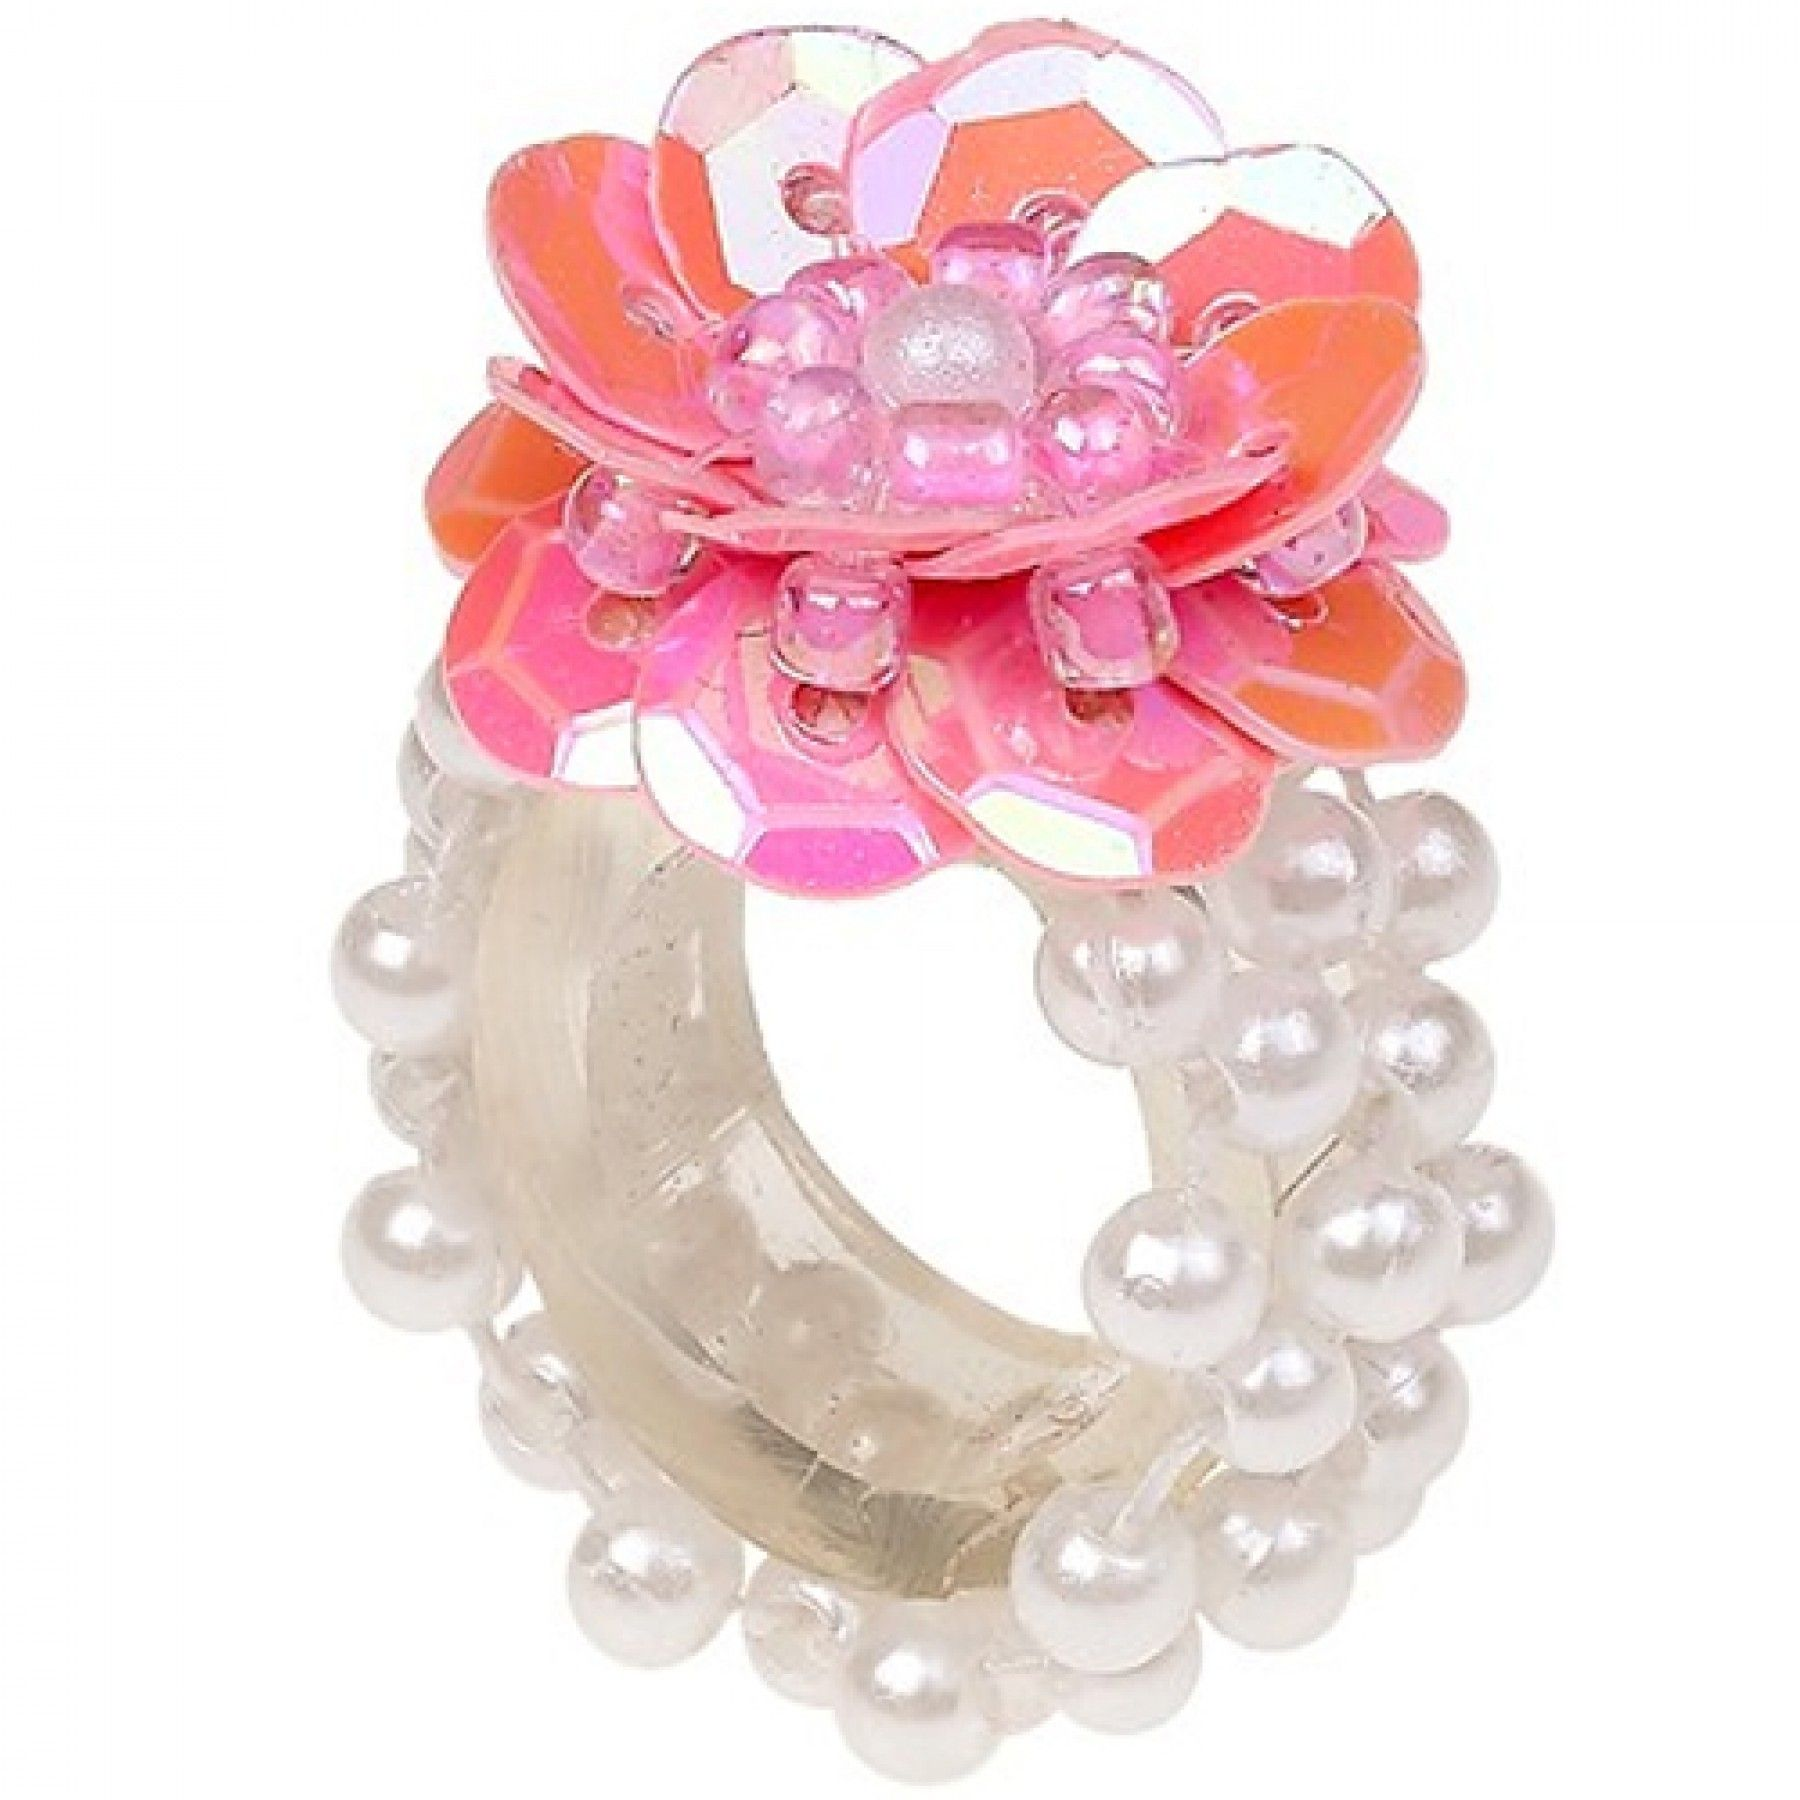 souza for kids ring mary 104005 | ilovespeelgoed.nl